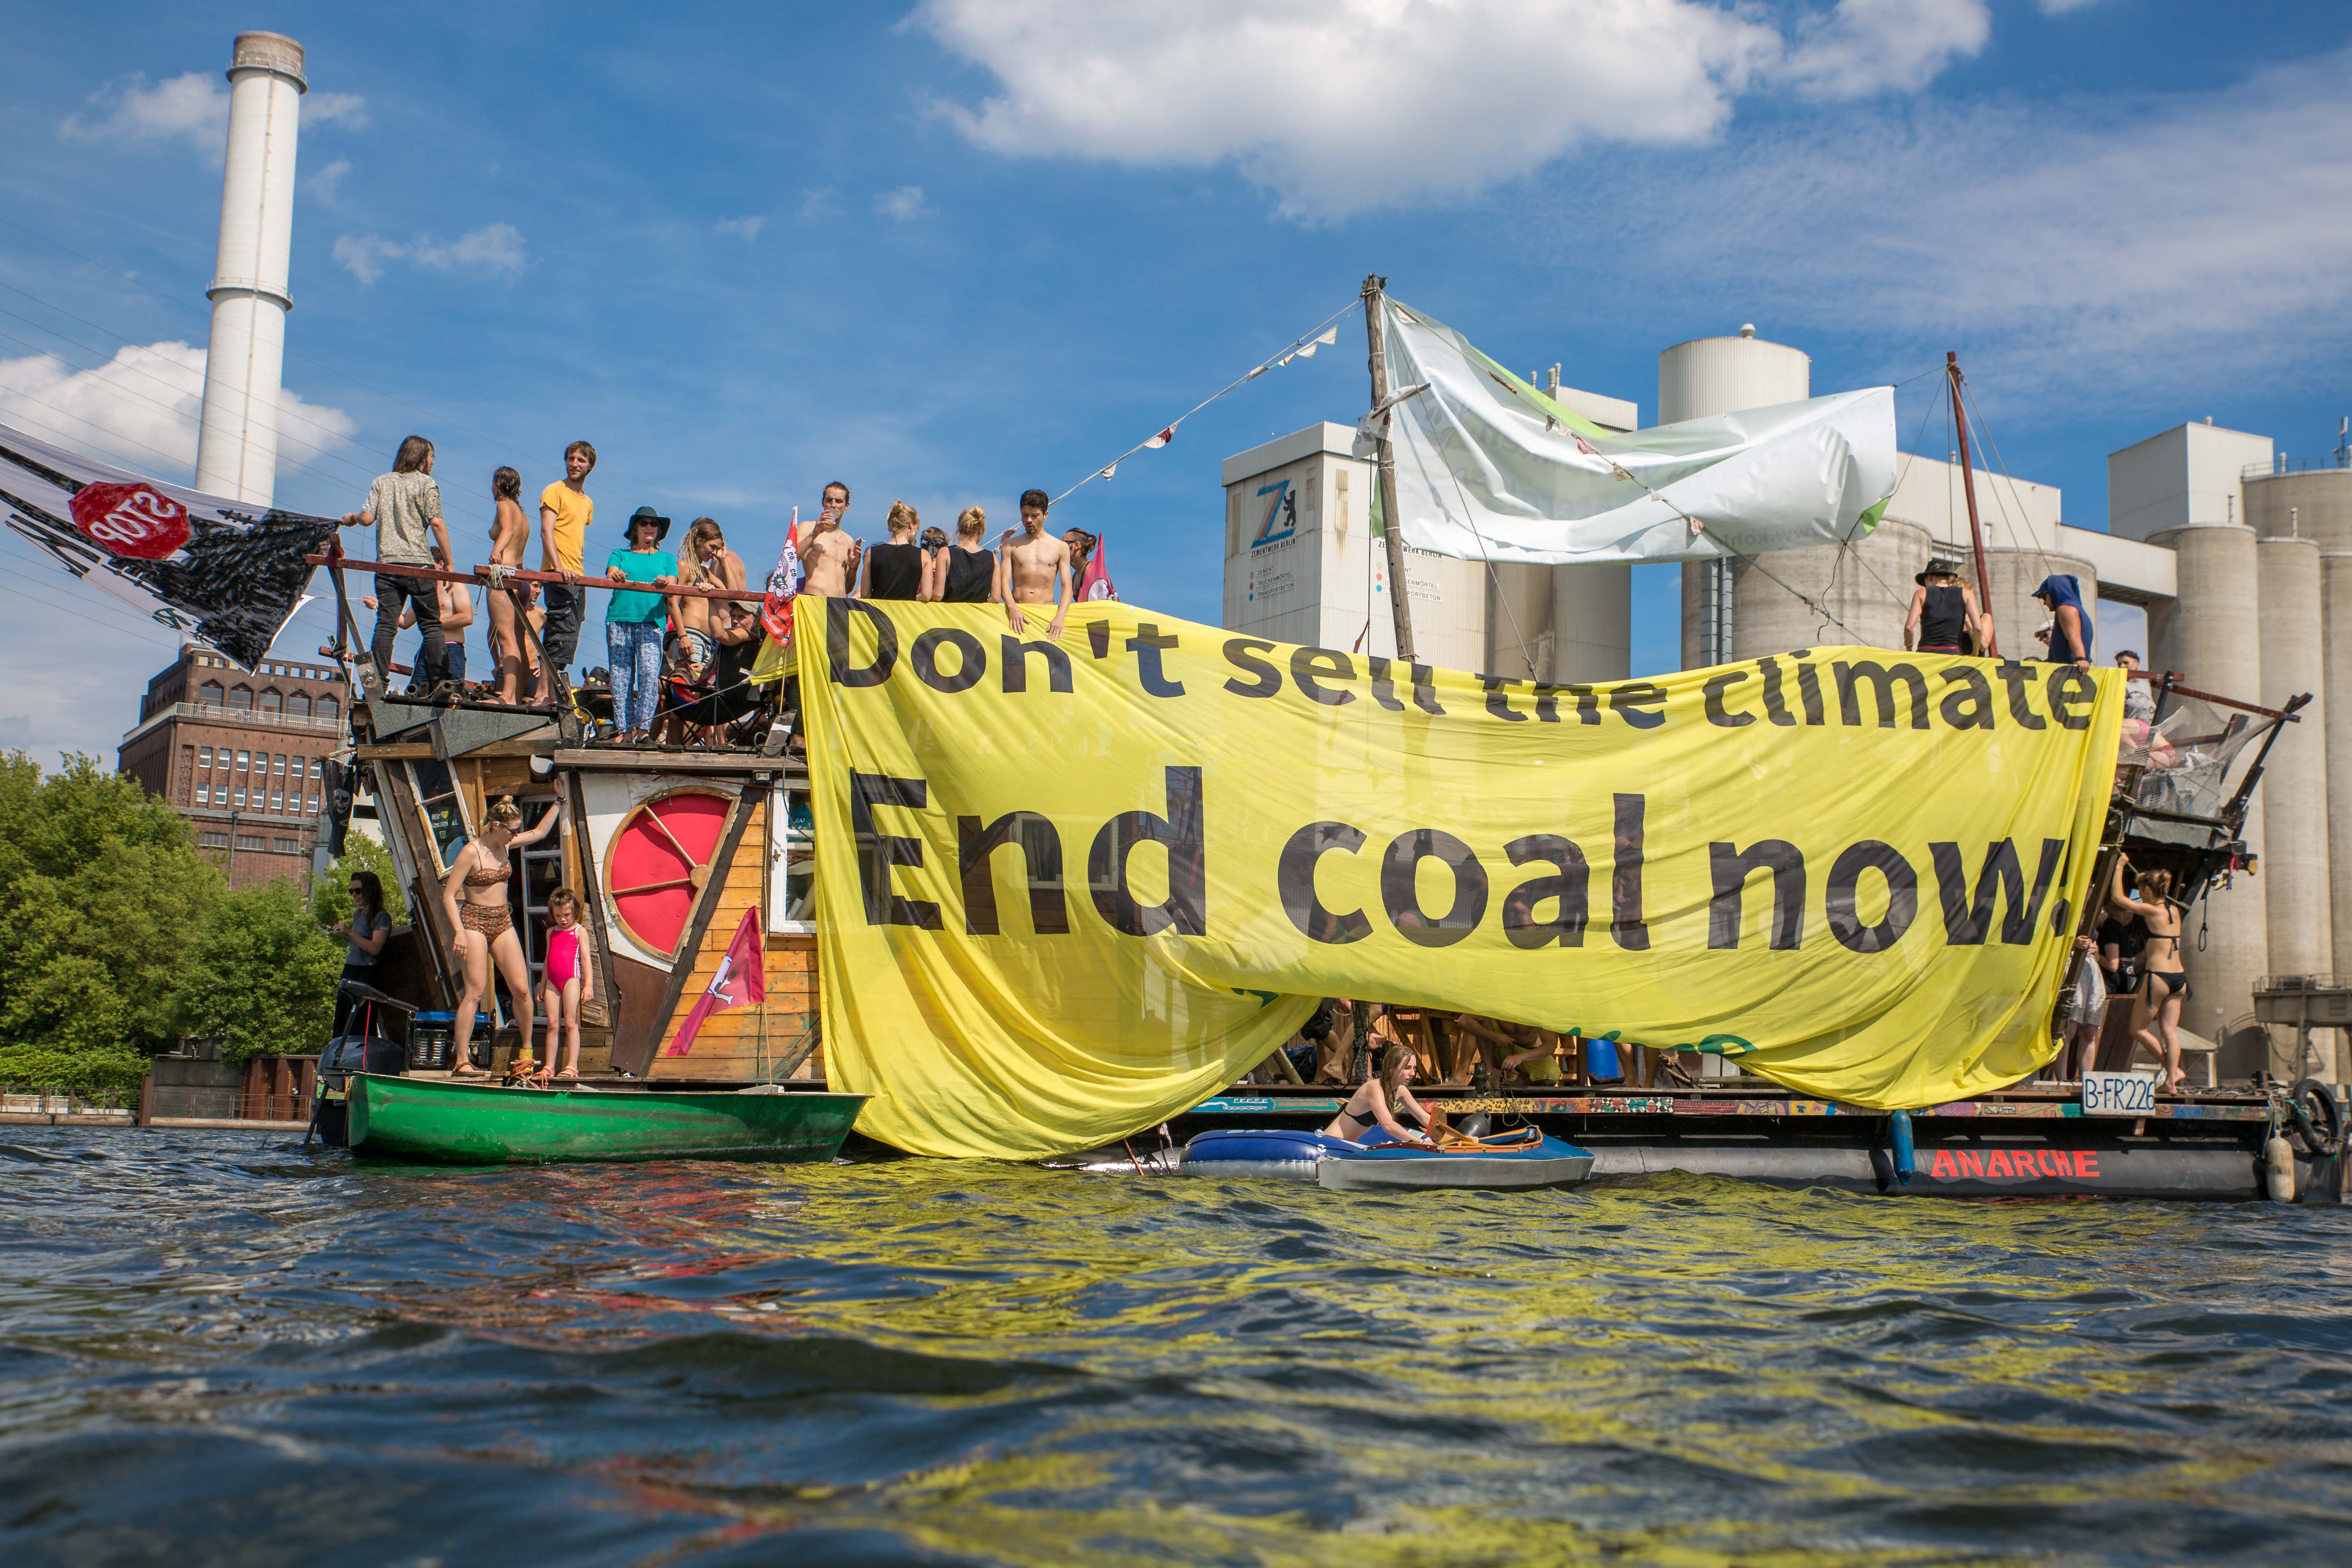 coal and boat - End coal now